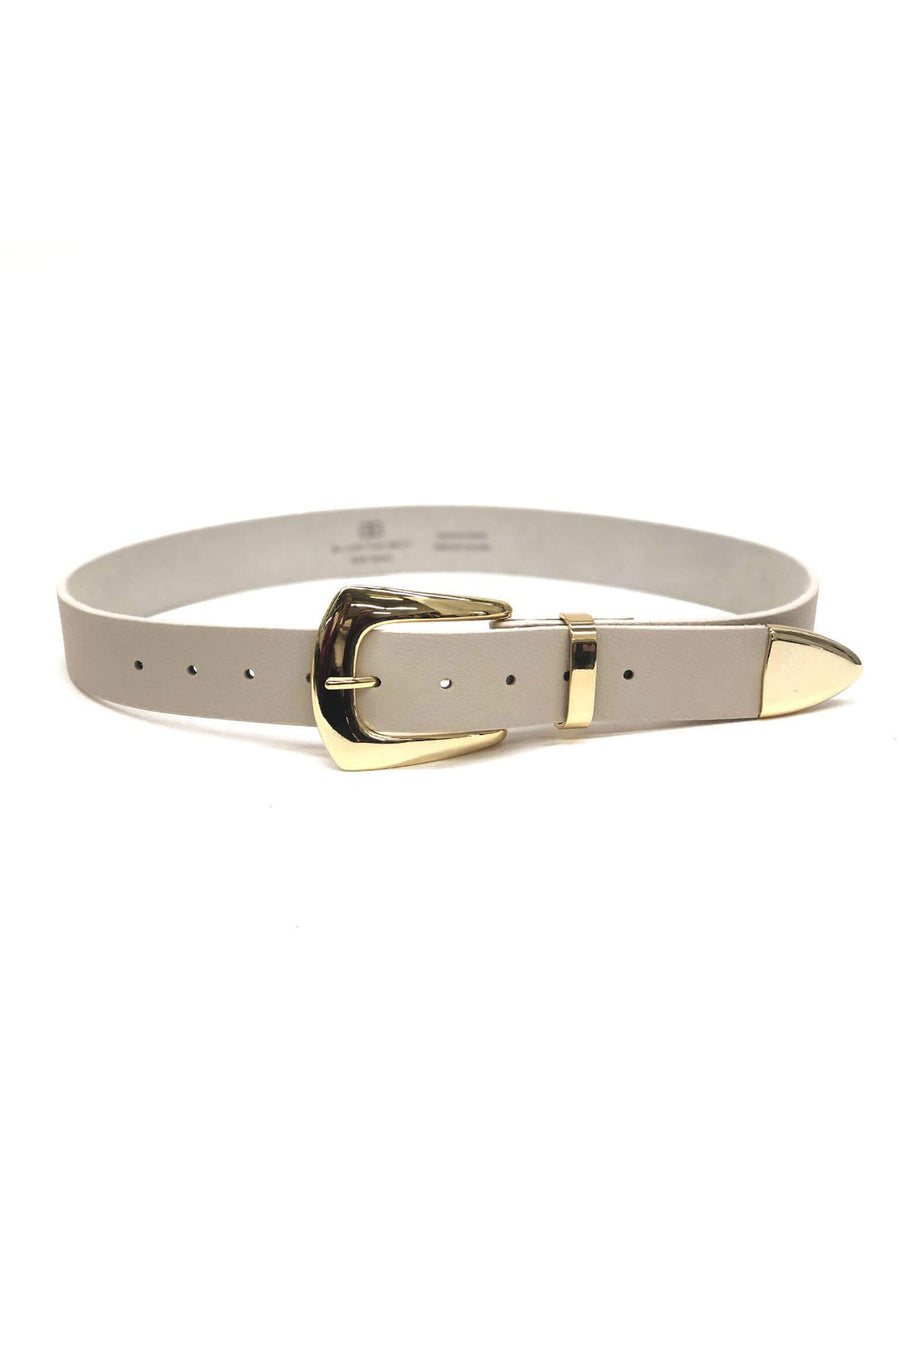 B-Low The Belt Jordana Mini Belt from The New Trend